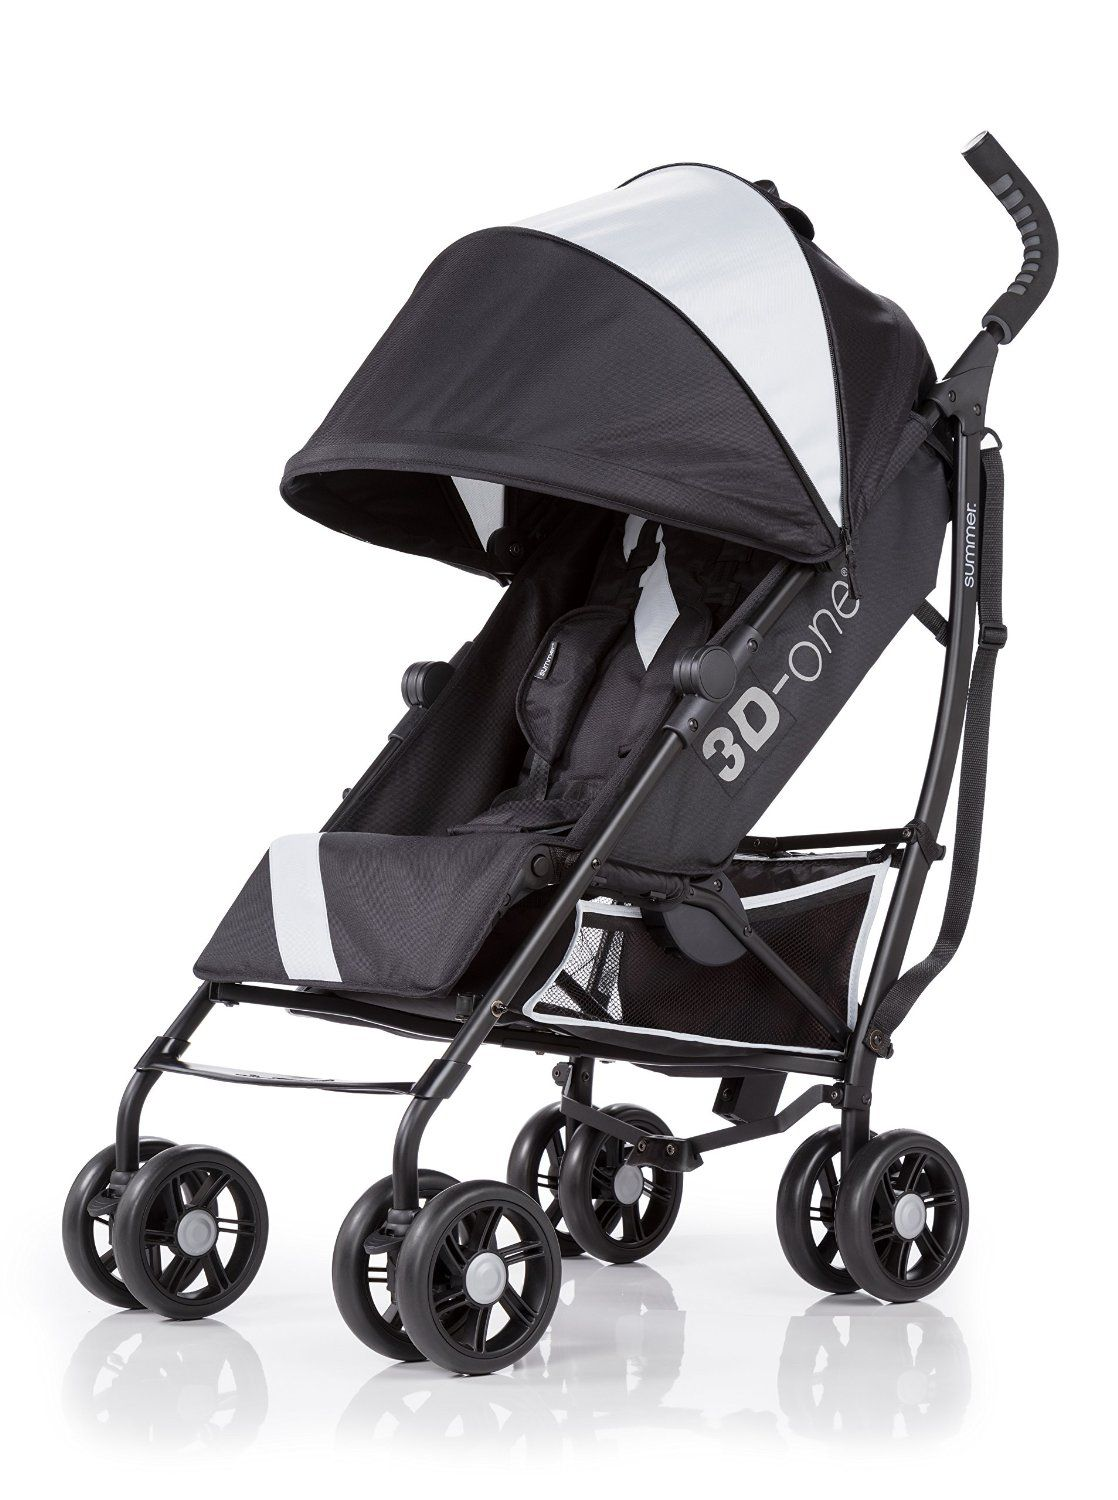 best umbrella stroller with large canopy  sc 1 st  Pinterest & best umbrella stroller with large canopy | Best umbrella stroller ...